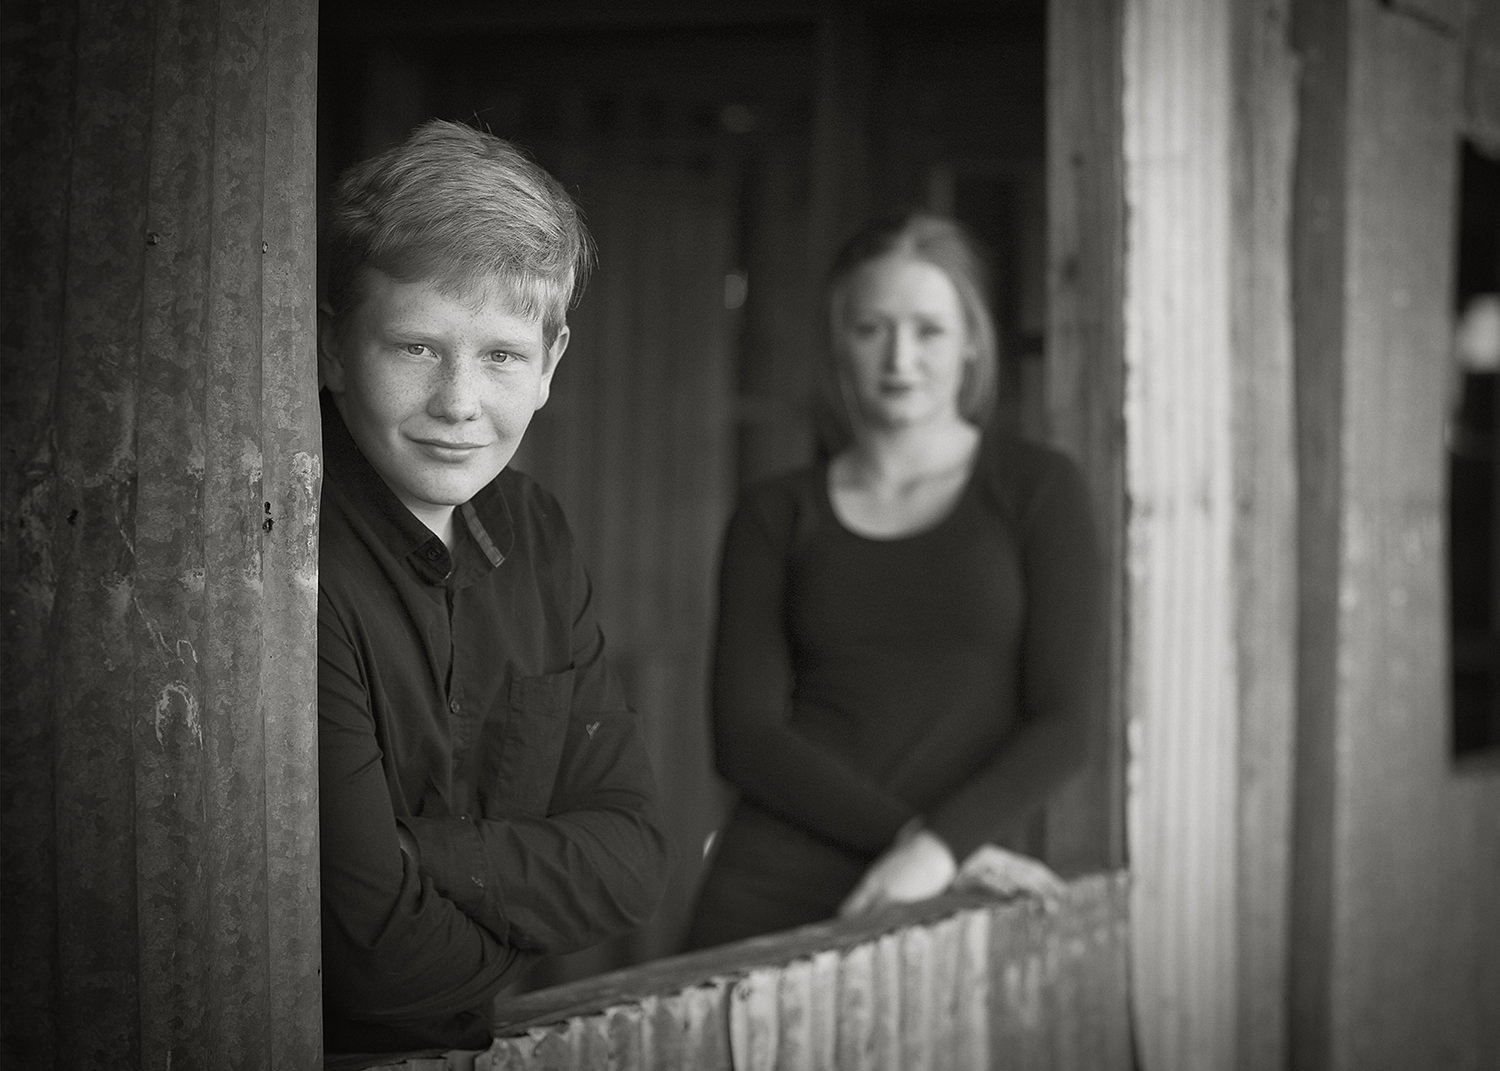 brother and sister portraits-family portraits-black and white portraits-portrait composition